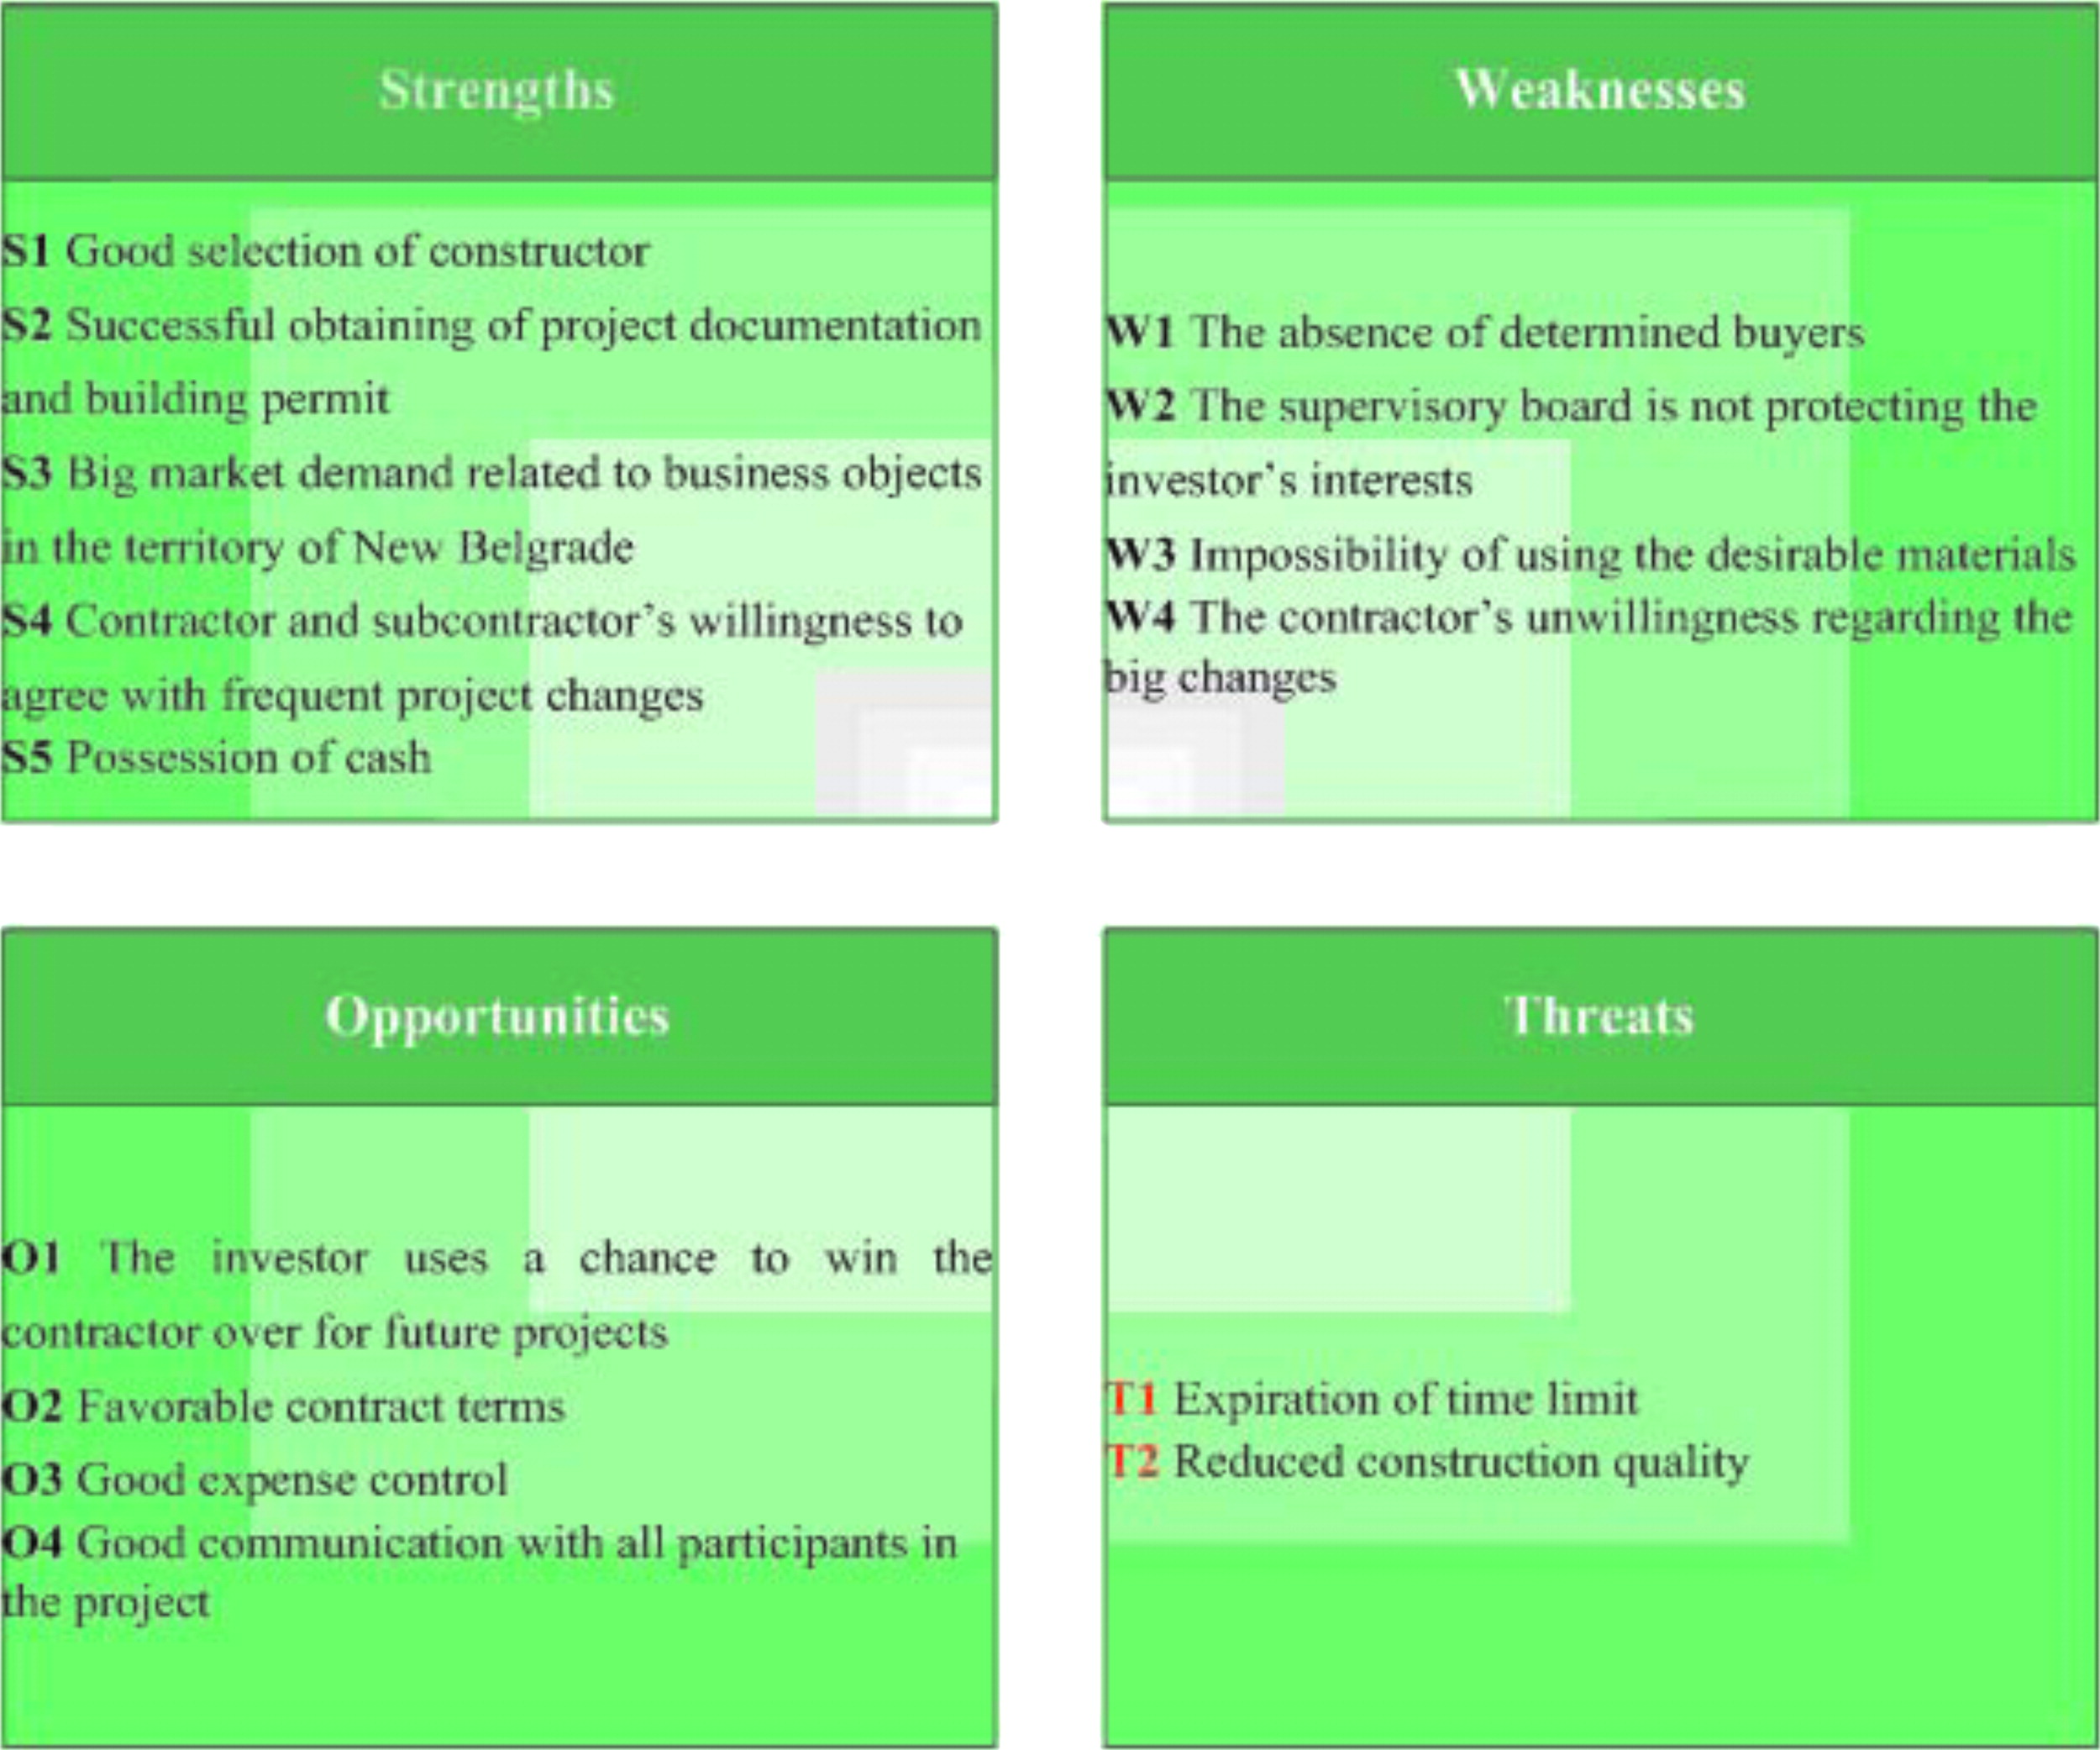 3 weaknesses to put on a job application